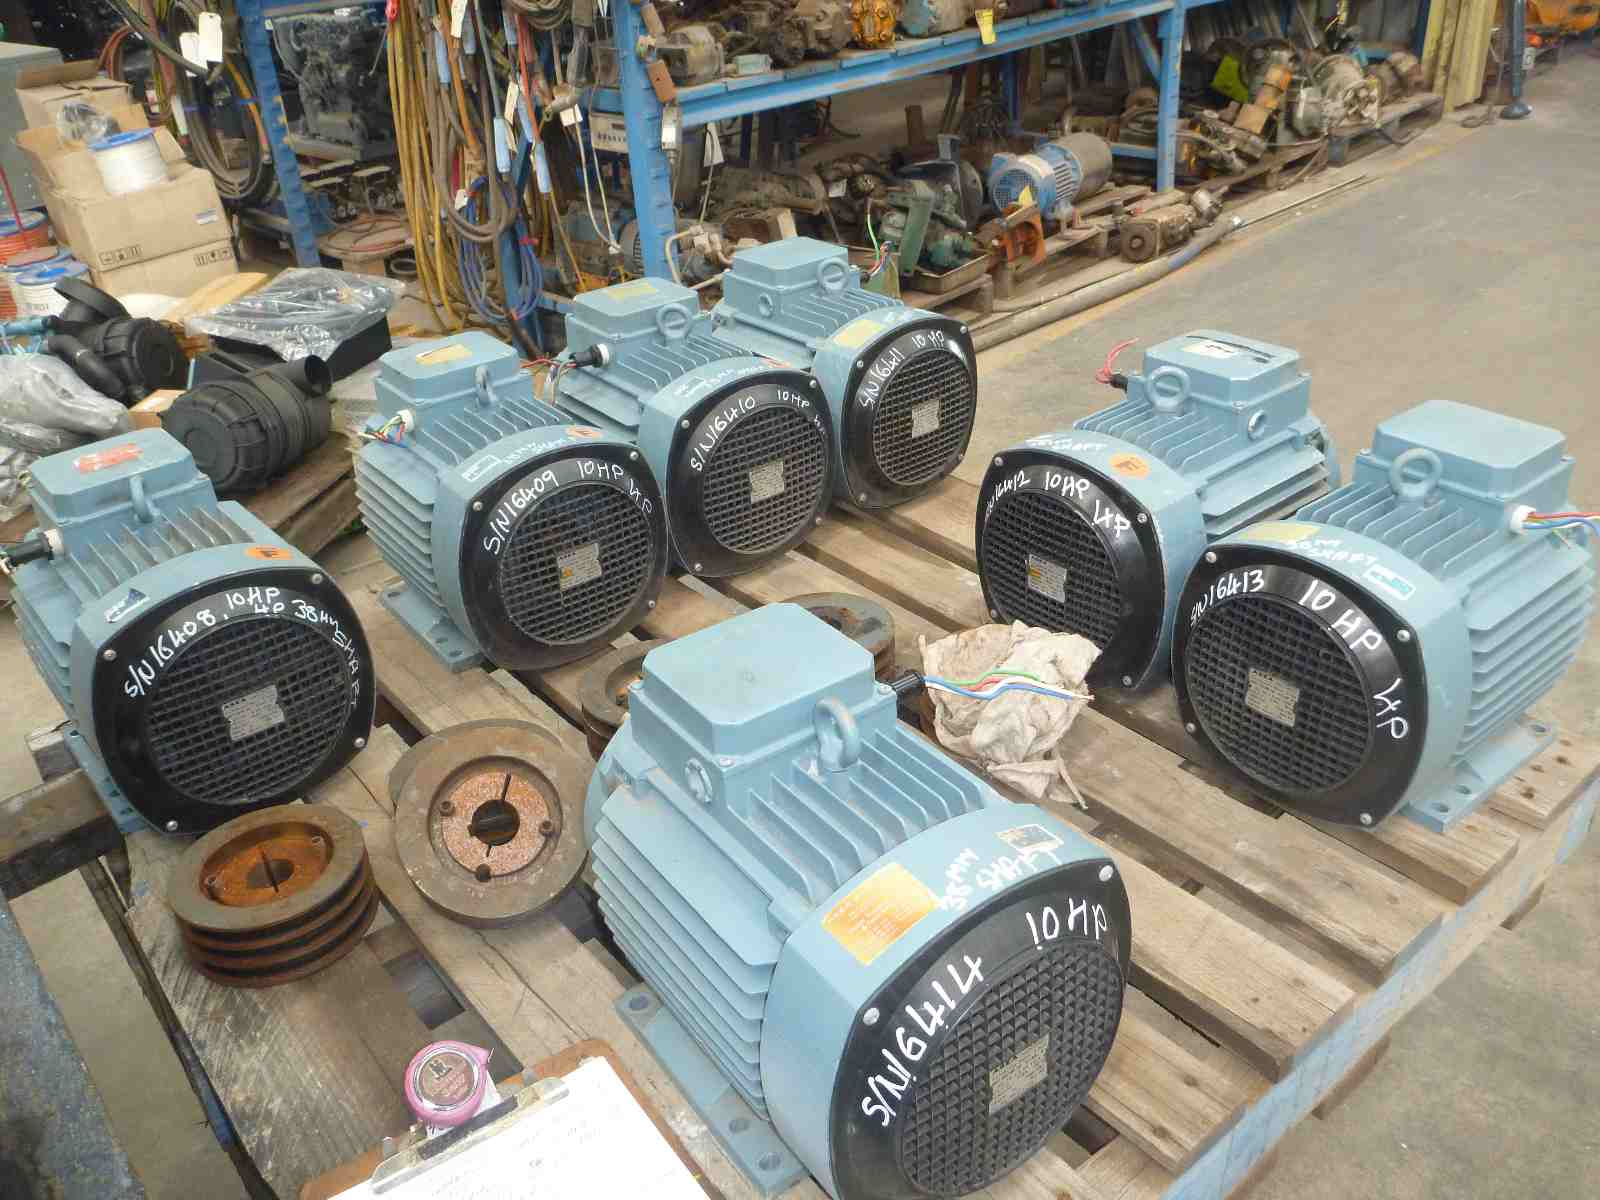 ASEA 10HP 3 PHASE ELECTRIC MOTOR | Bills Machinery.